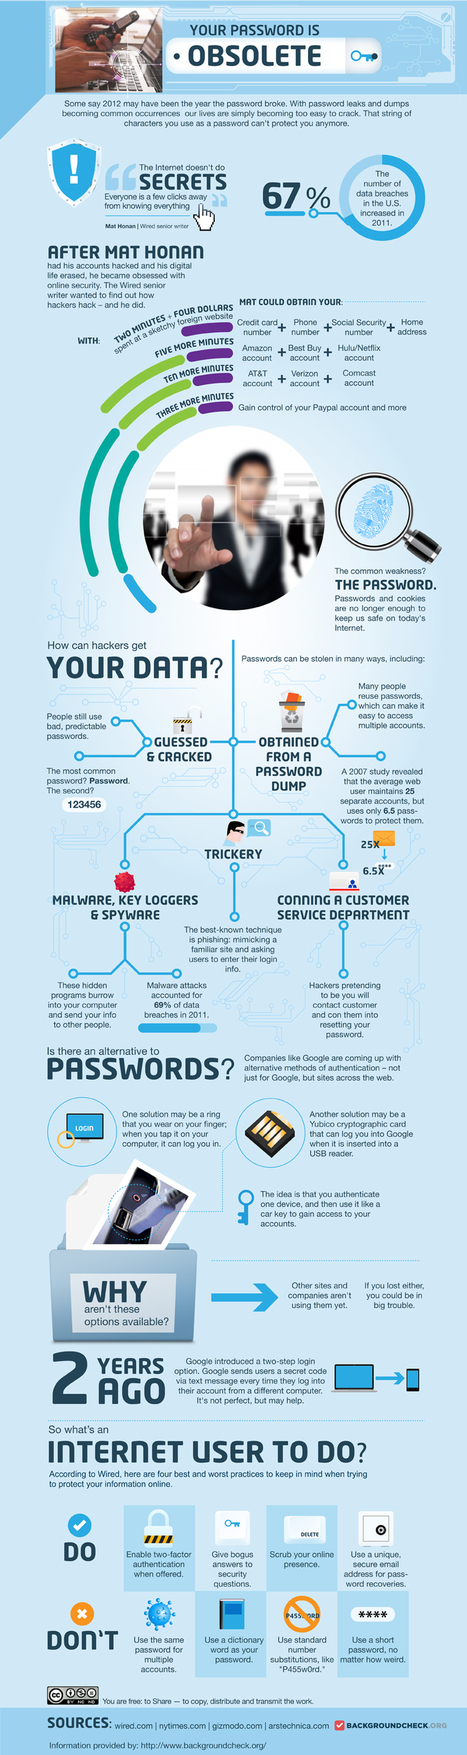 Your Password is Obsolete - An Infographic | Web 2.0 for juandoming | Scoop.it